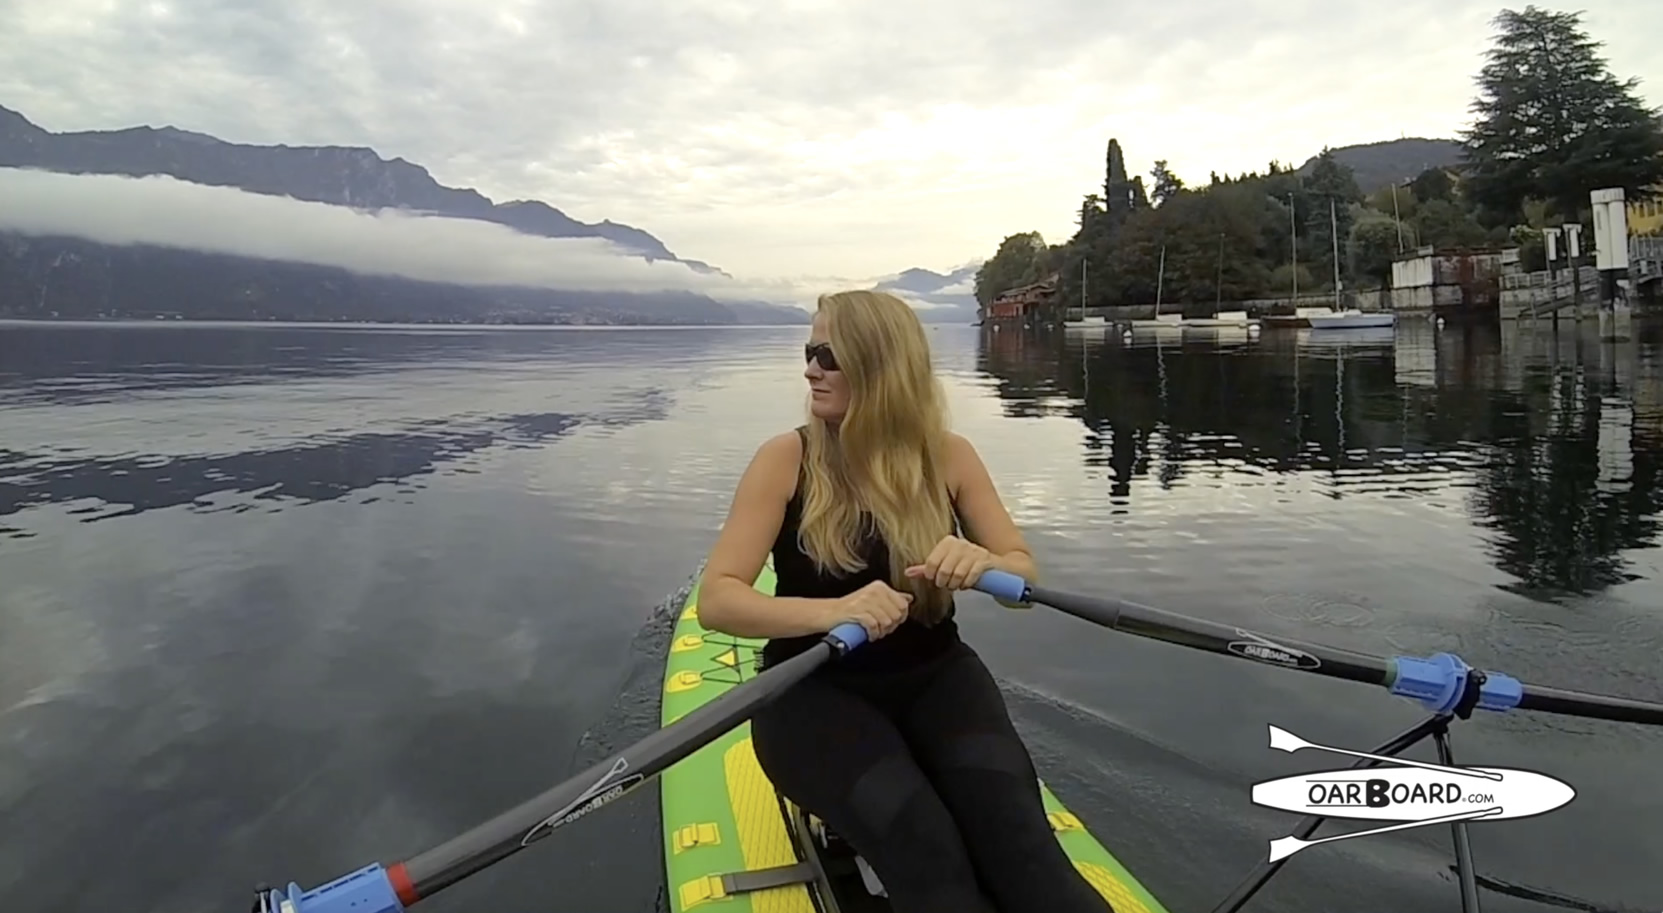 Diana-Lesieur-Oar-Board-Stand-Up-Paddle-Board-Whitehall-Rowing-and-Sail-Adventure-Vacation-Lifestyle-Lak-Como-Italy